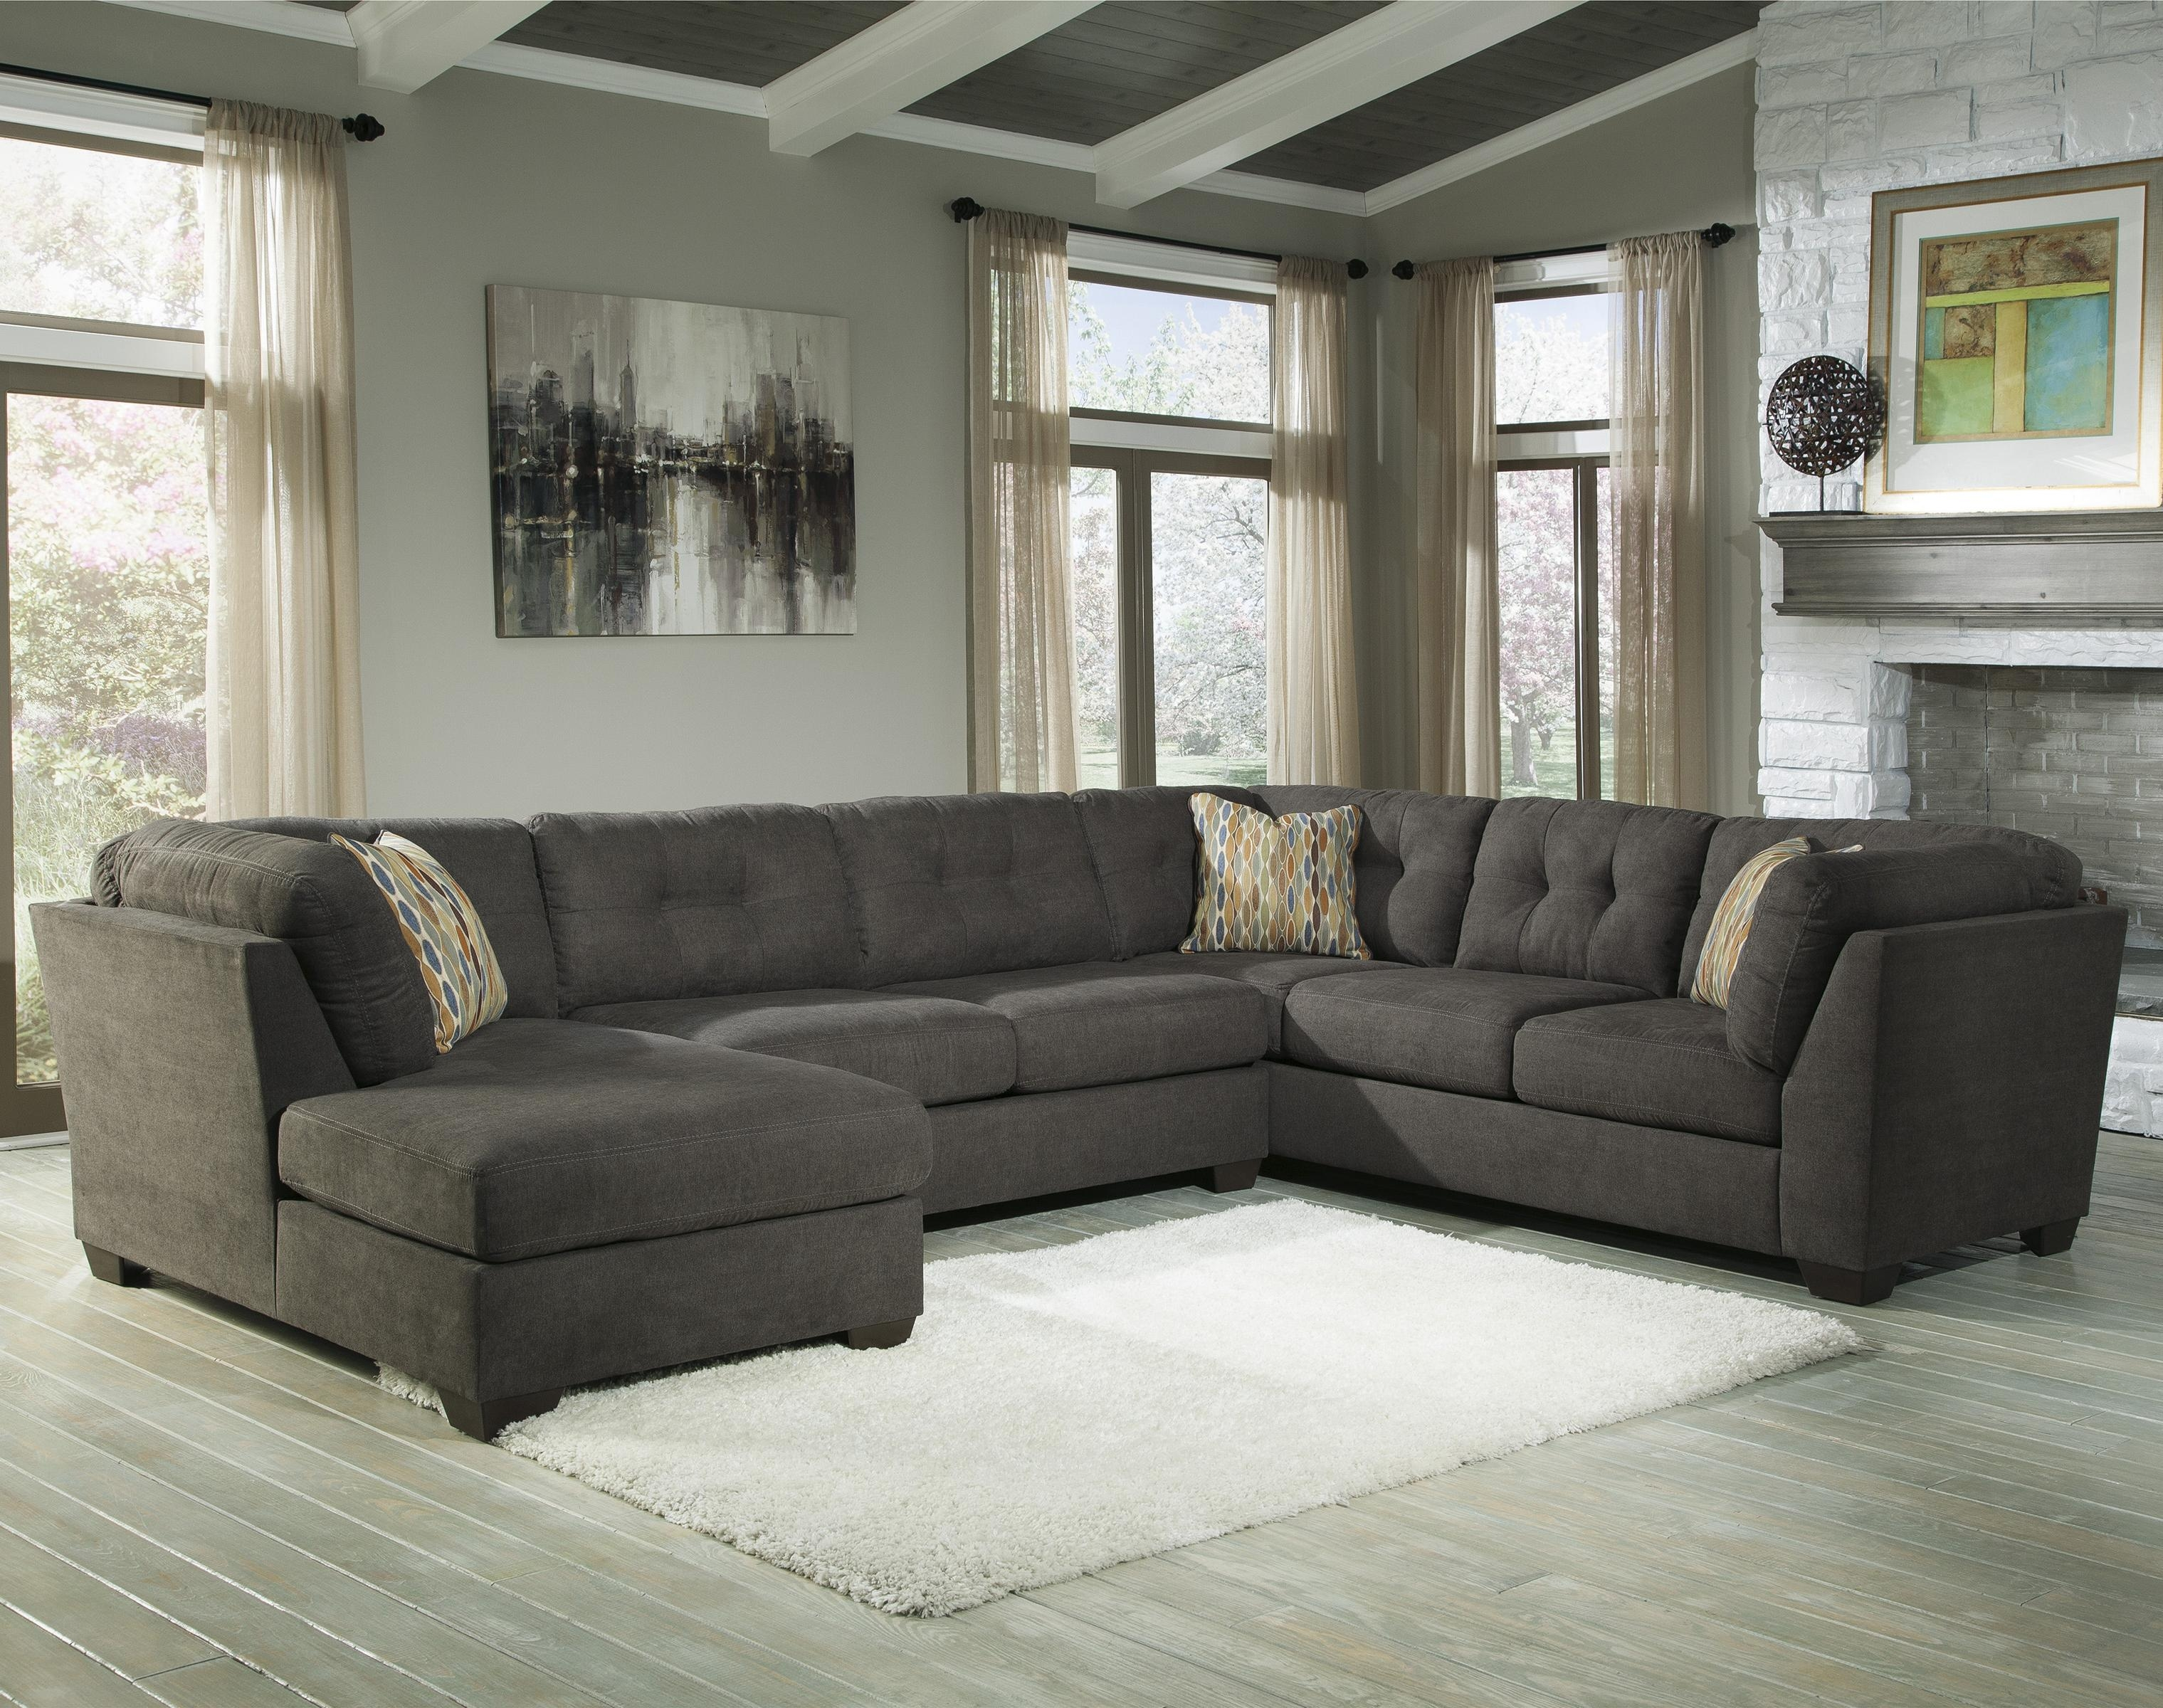 2 Piece Sectional Sleeper Cindy Crawford Home Madison Place Hydra